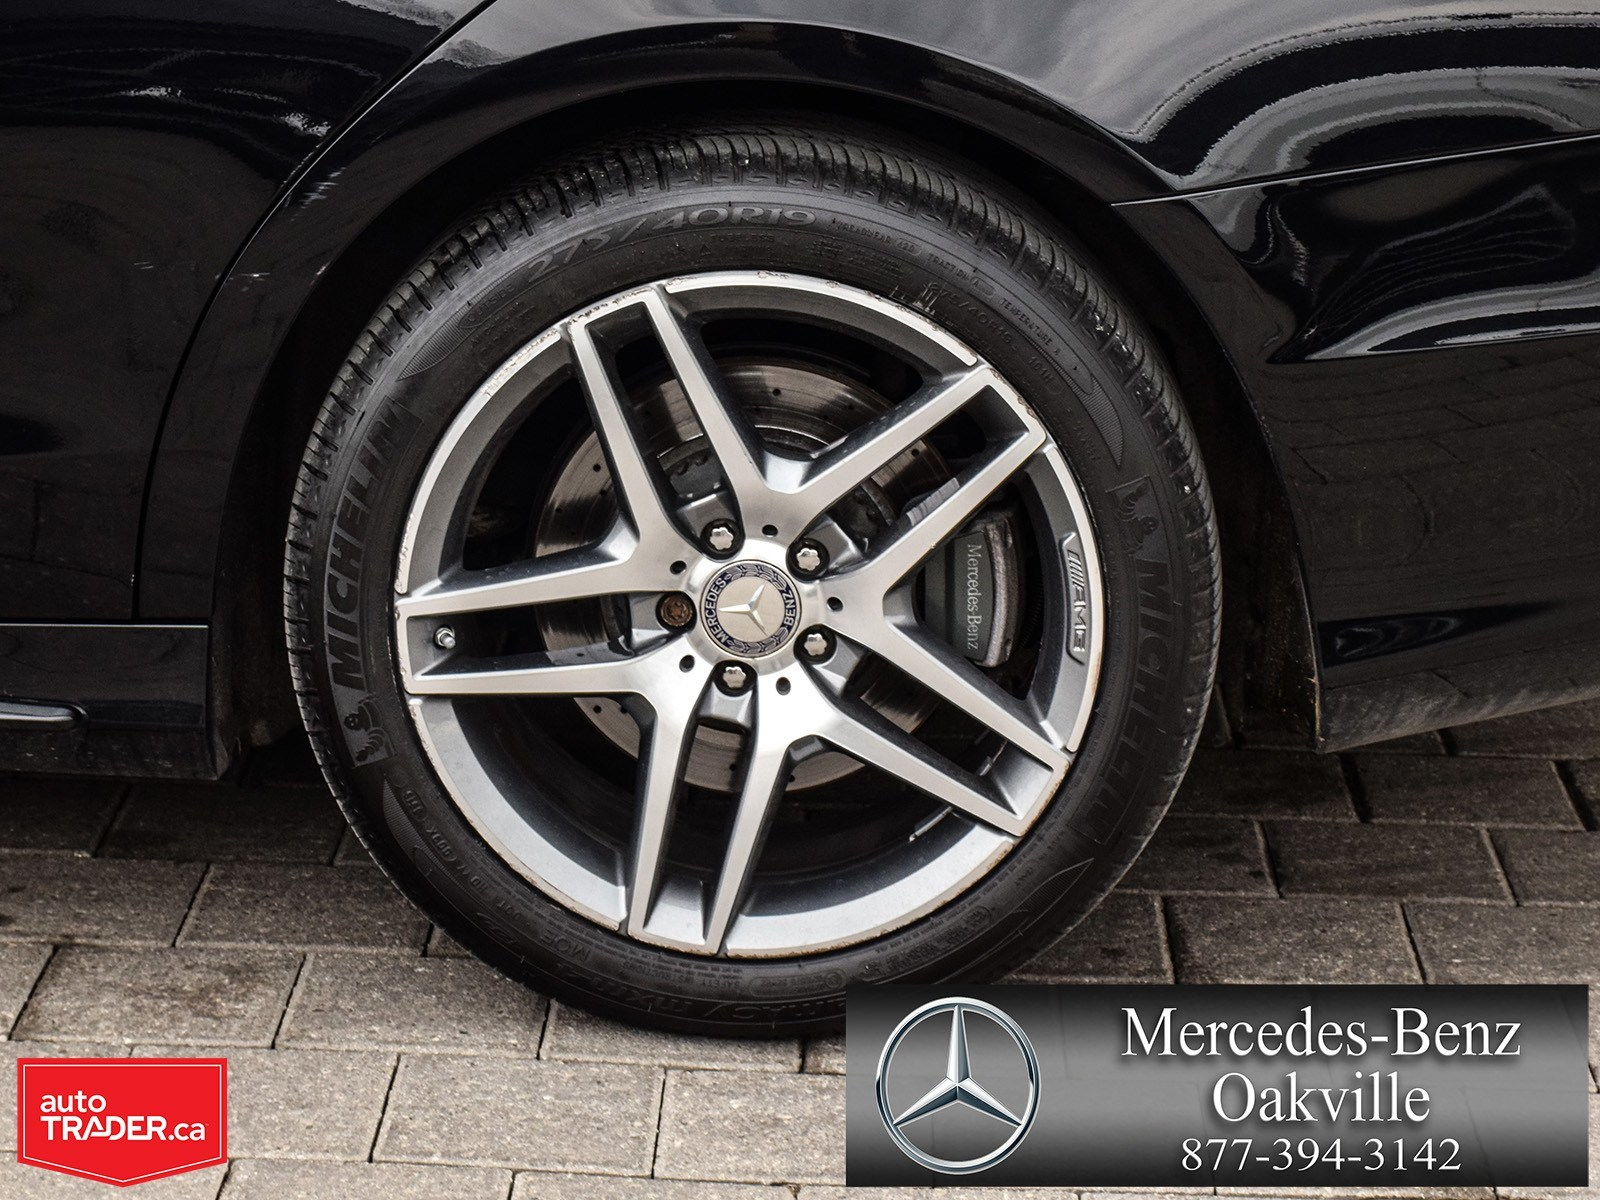 Certified Pre-Owned 2015 Mercedes-Benz S-CLASS S550